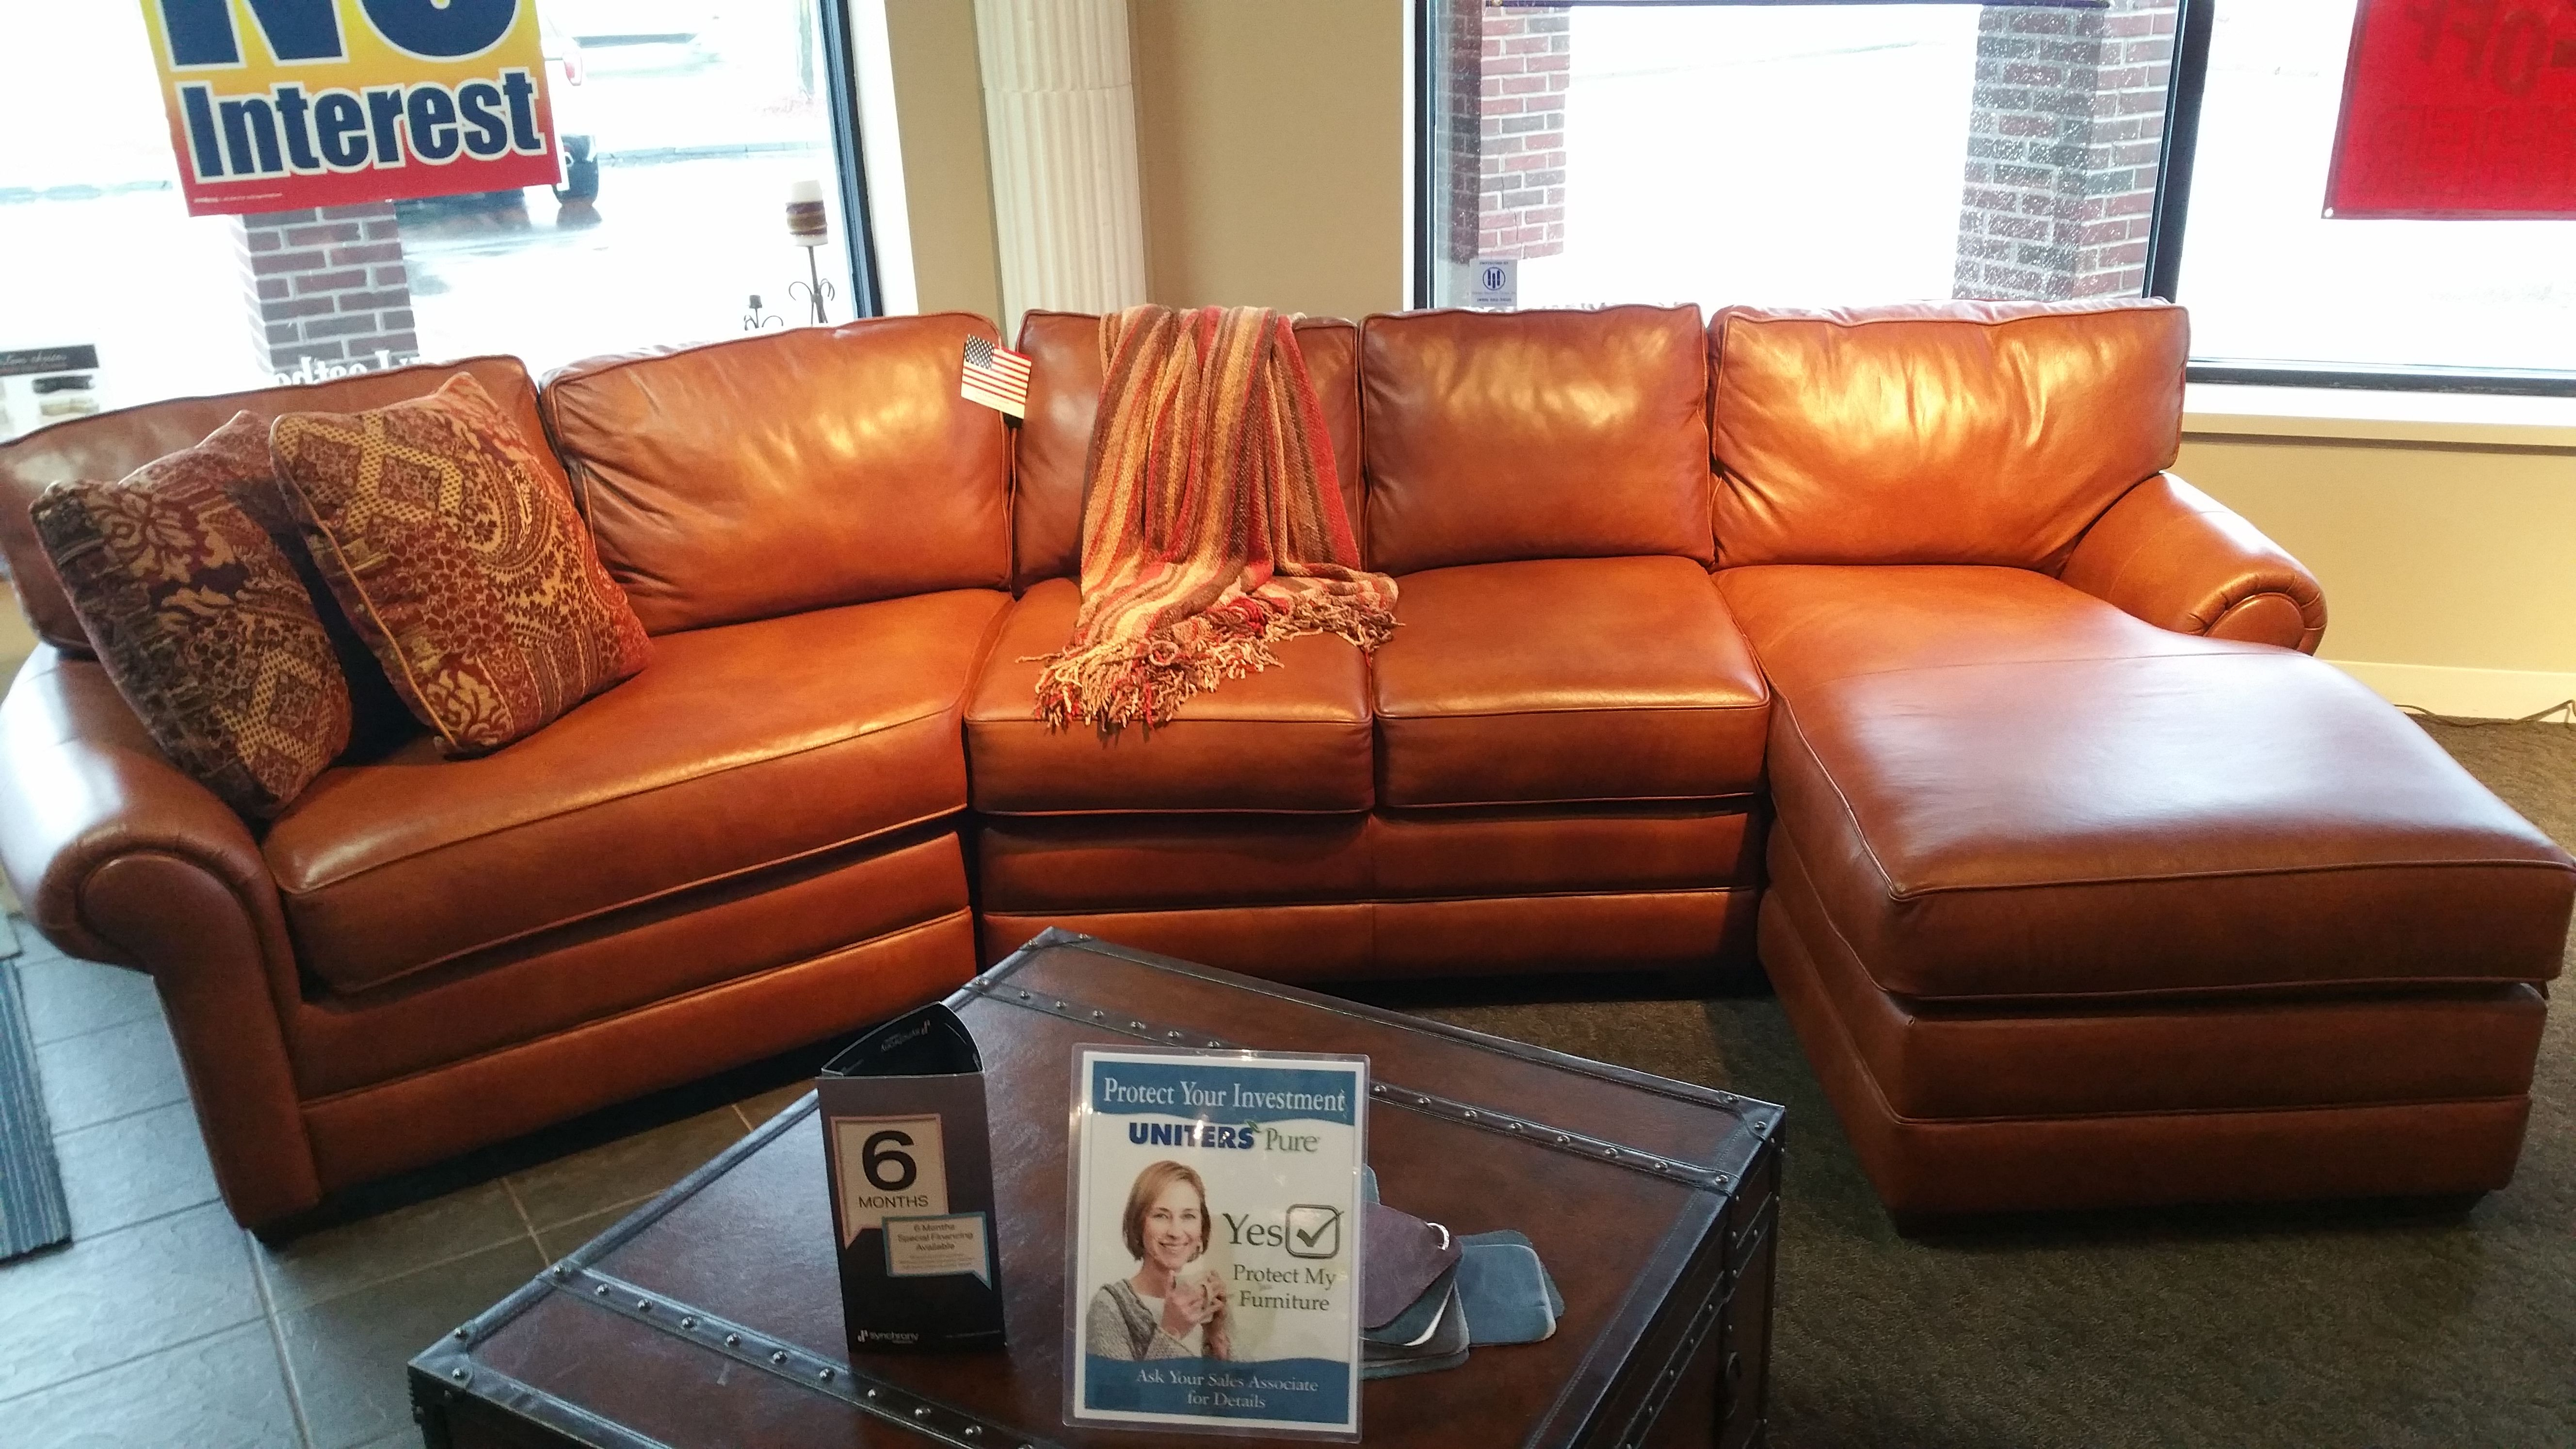 Old World Tan Saddle Color Customize This Sectional To Be L Shaped Rounded Or Simply A Sofa Loveseat Options Are Endless With The Custom